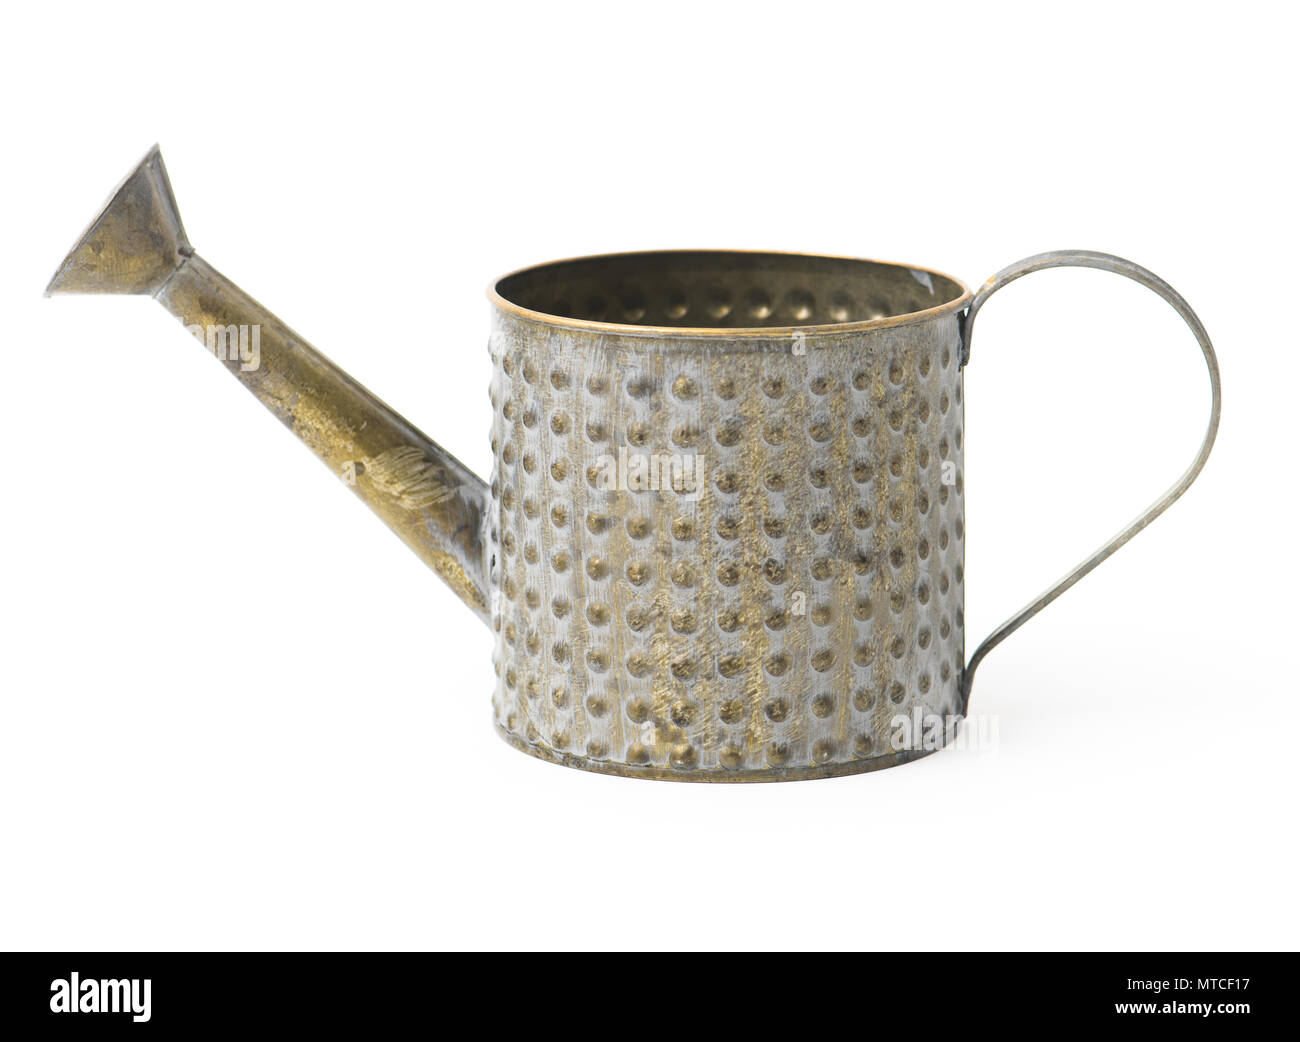 Old vintage metal watering can isolated on white background. - Stock Image